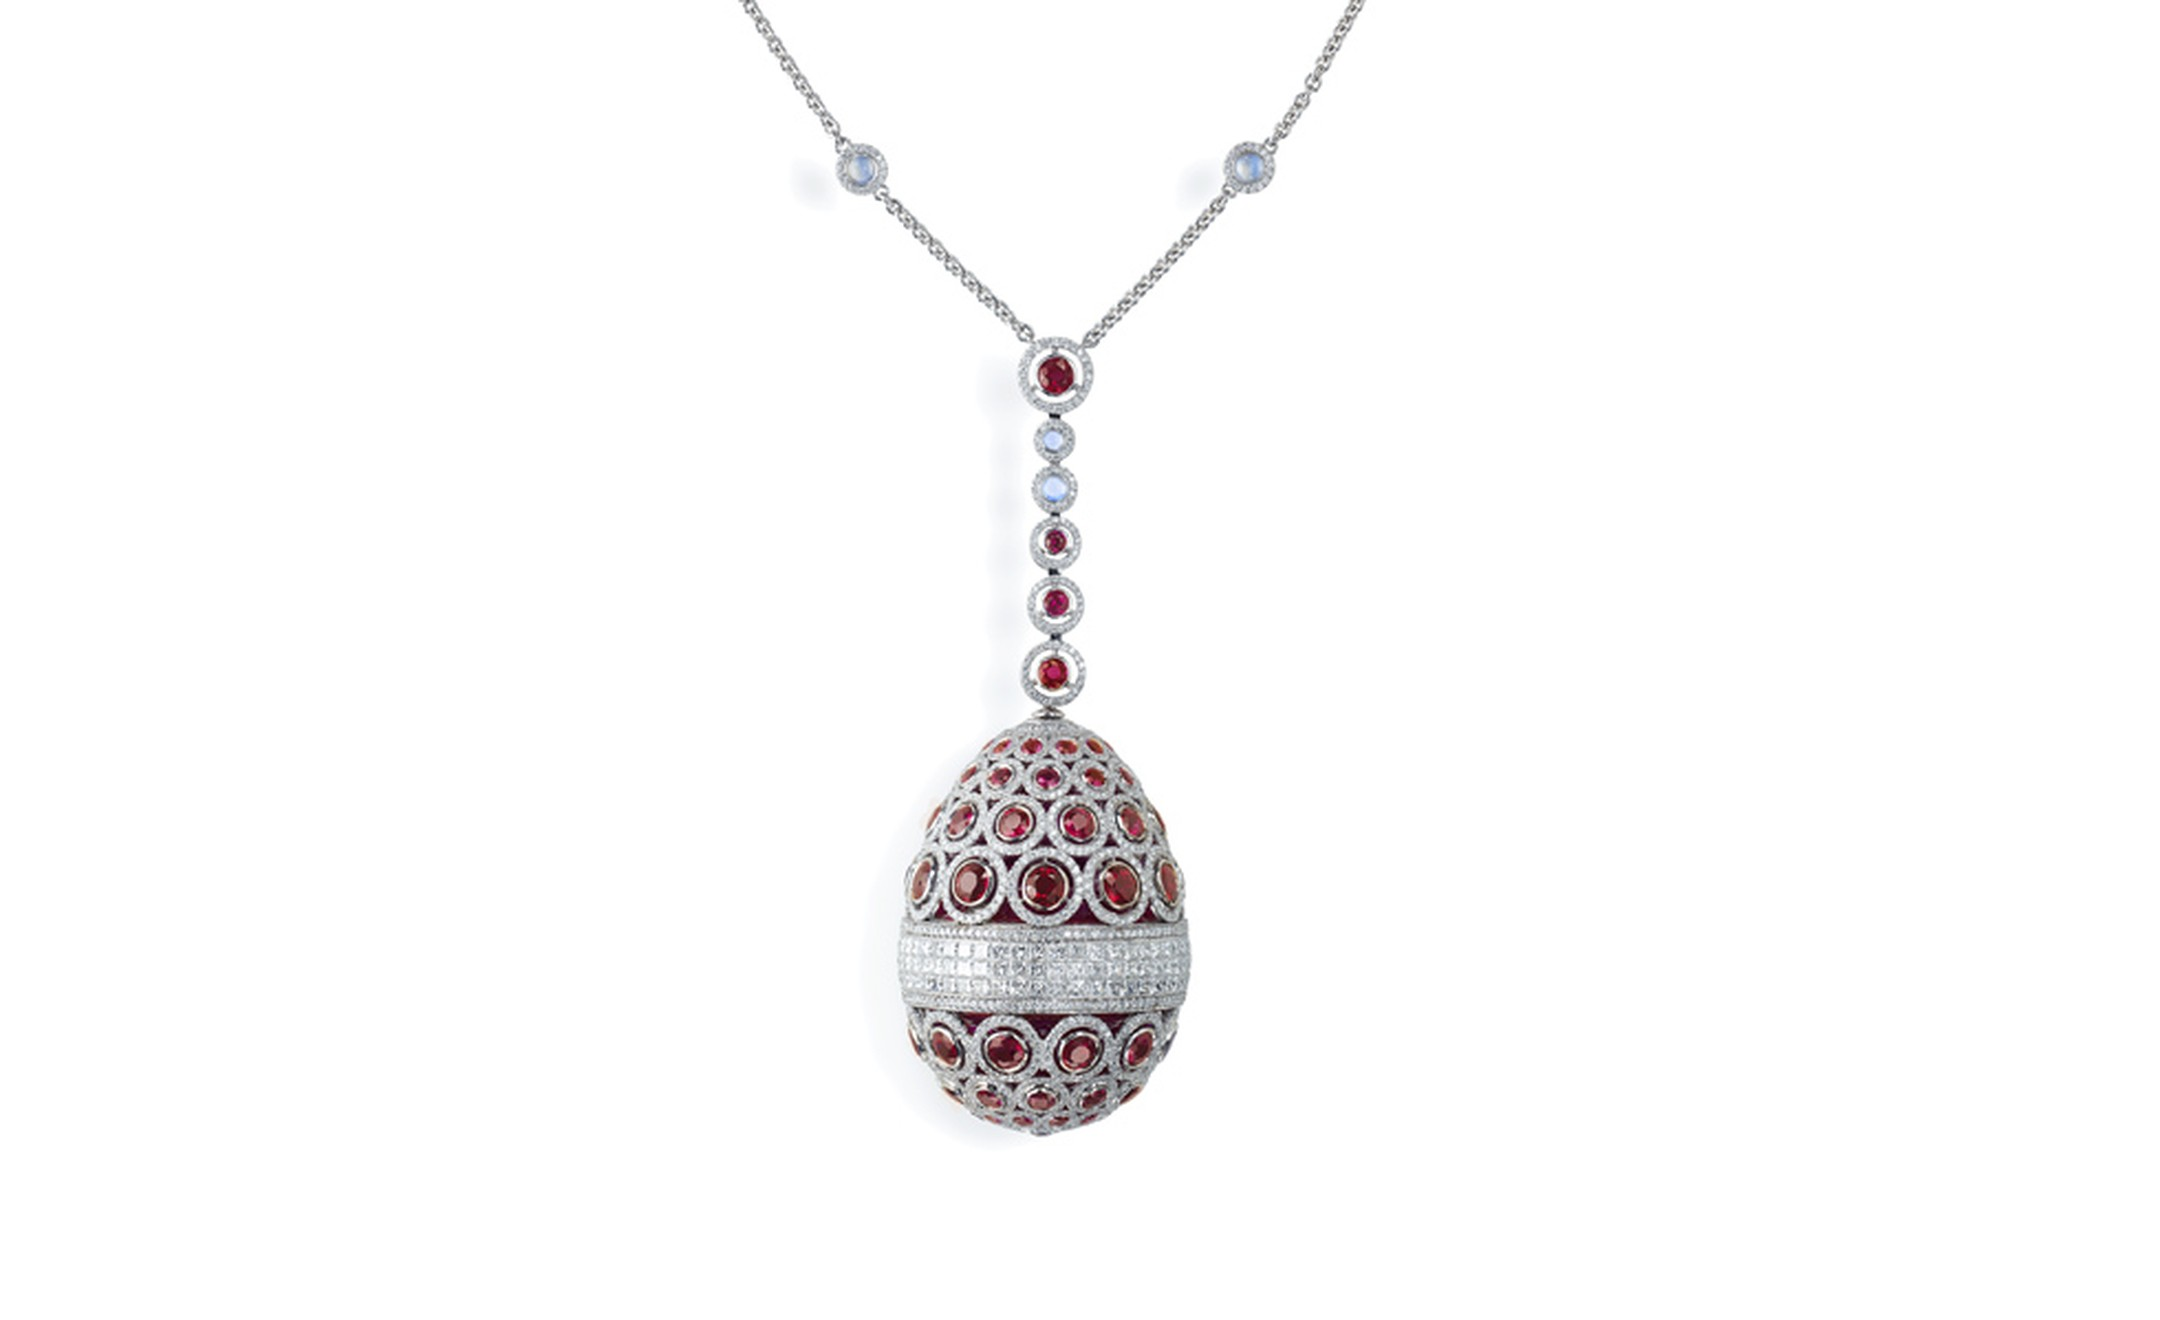 Fabergé. L'Oeuf Diaghilev (The Diaghilev Egg.) This piece is set with white gold and features 2012 stones including diamonds, rubies, shapphires and moonstones. POA